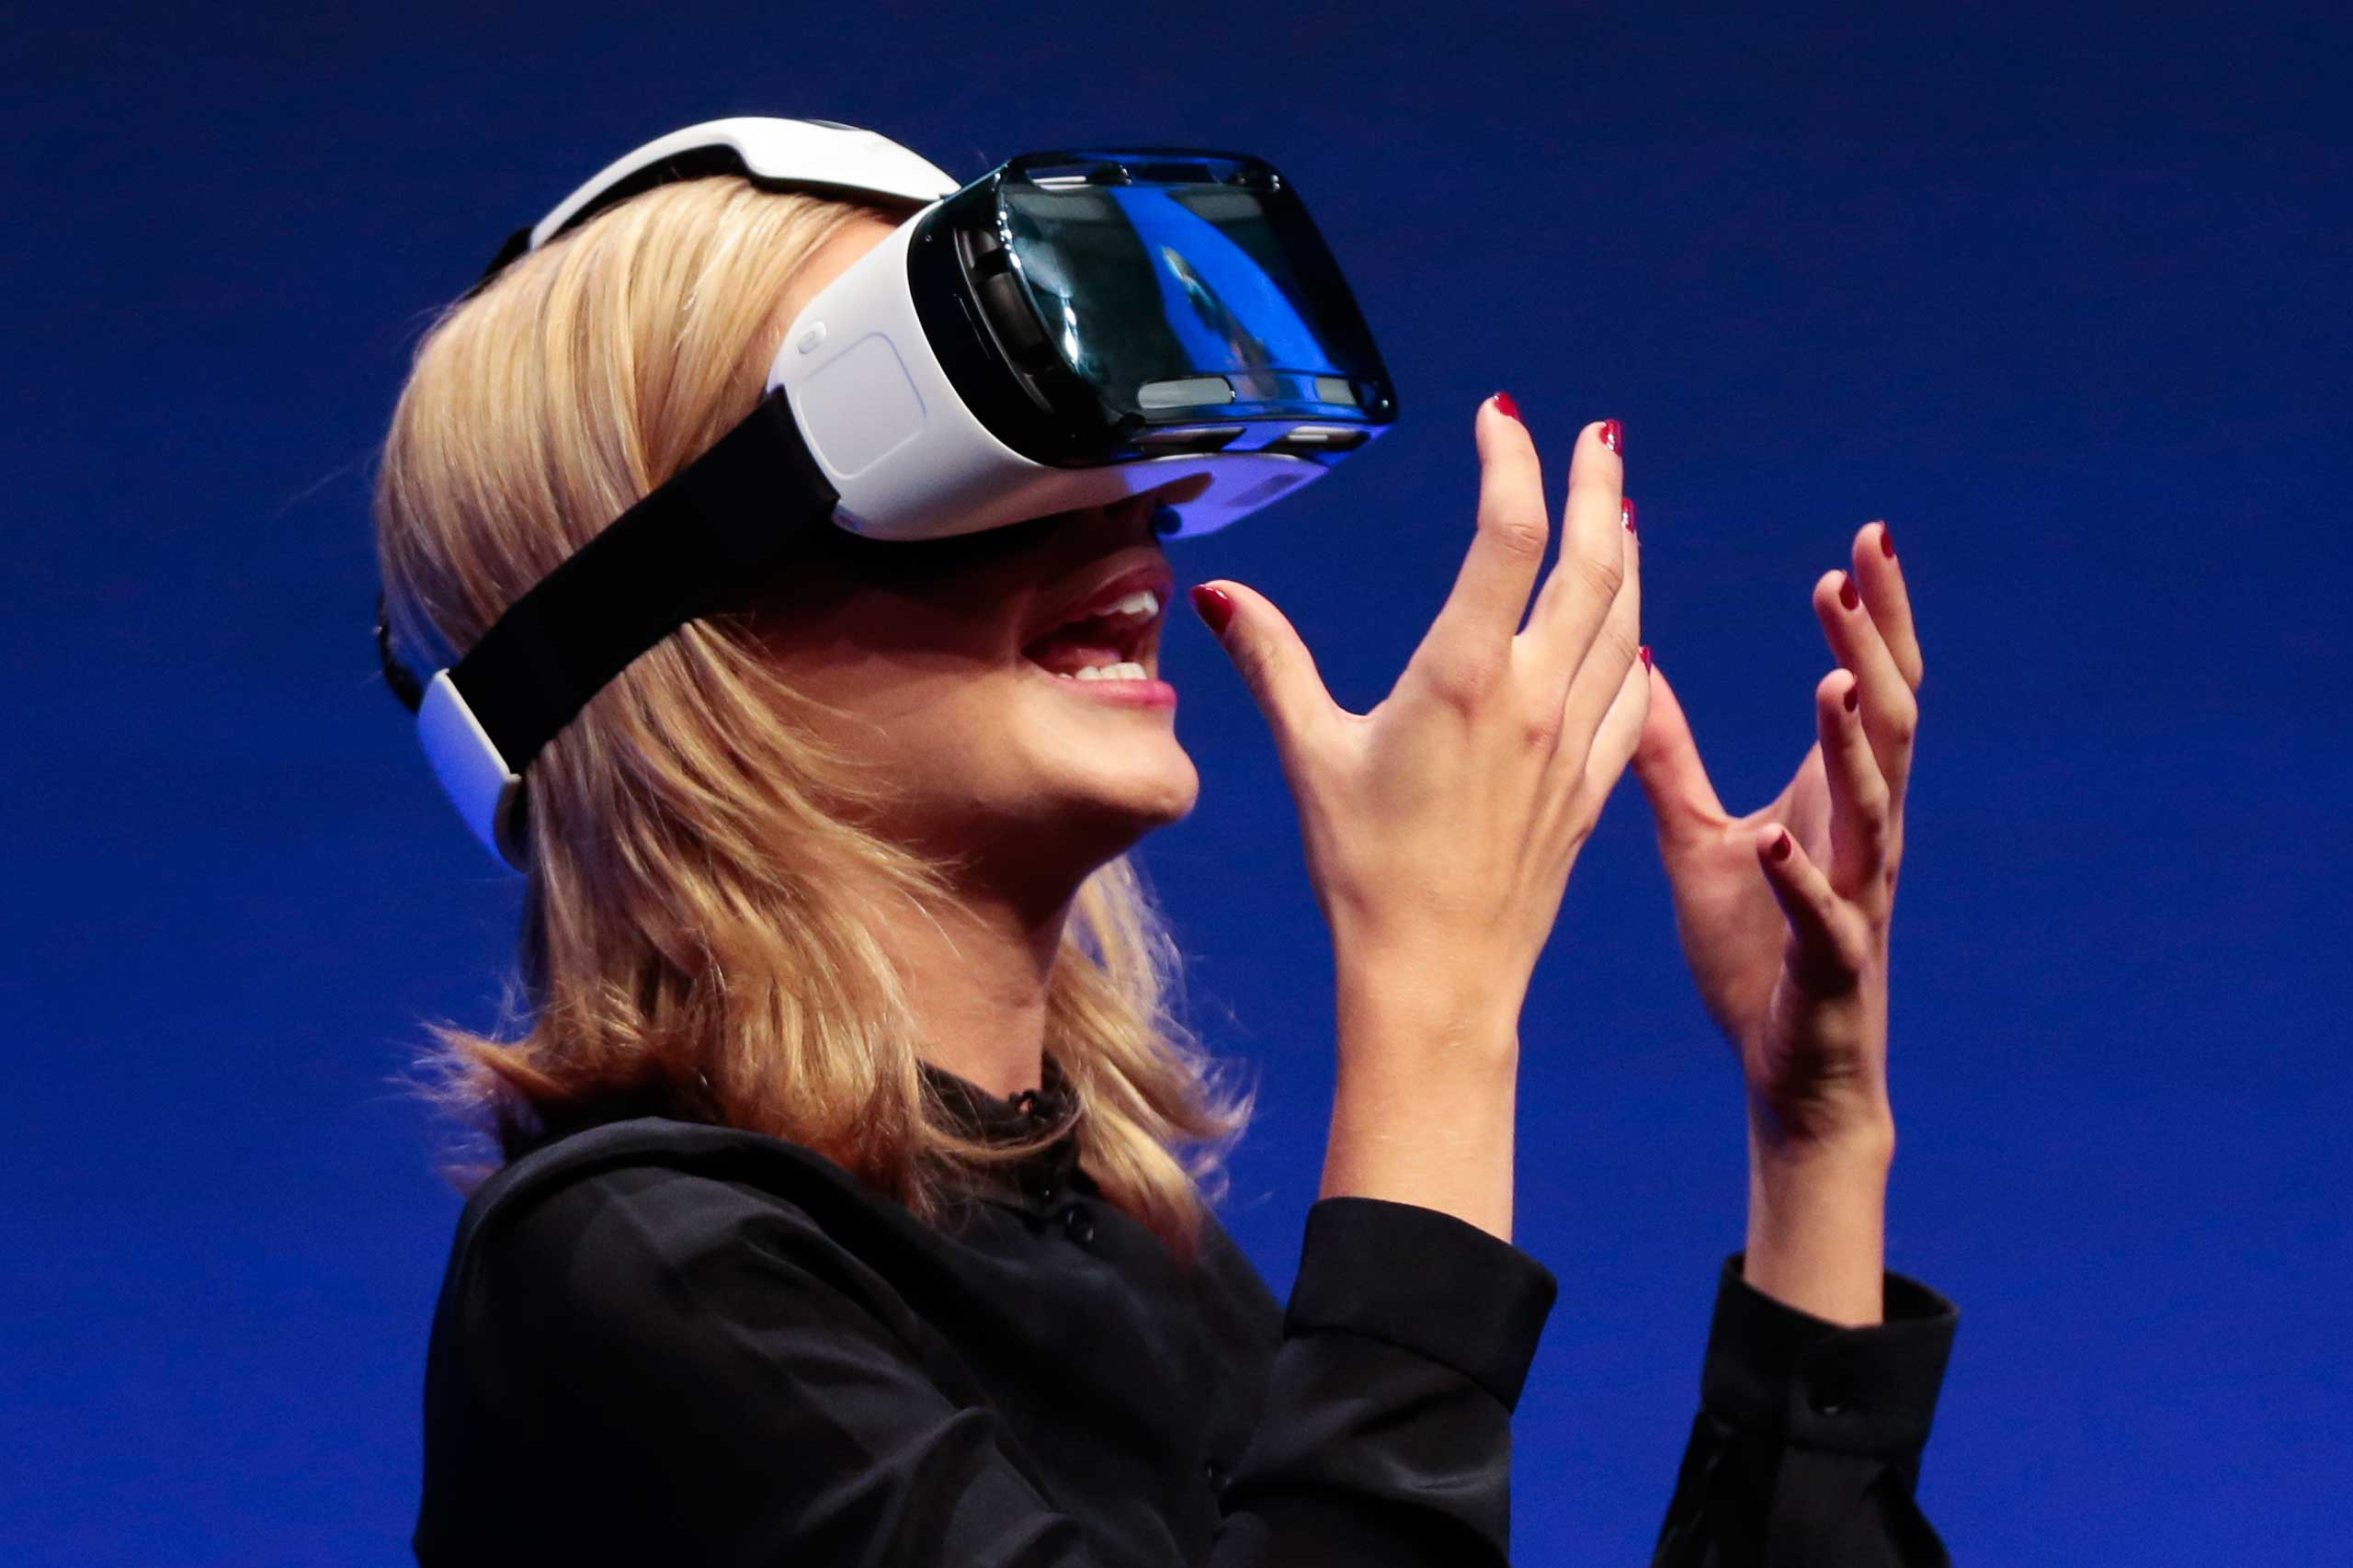 2014                                                              British television presenter Rachel Riley showed a virtual-reality headset called Gear VR during a Samsung event ahead of the consumer electronic fair IFA in Berlin.